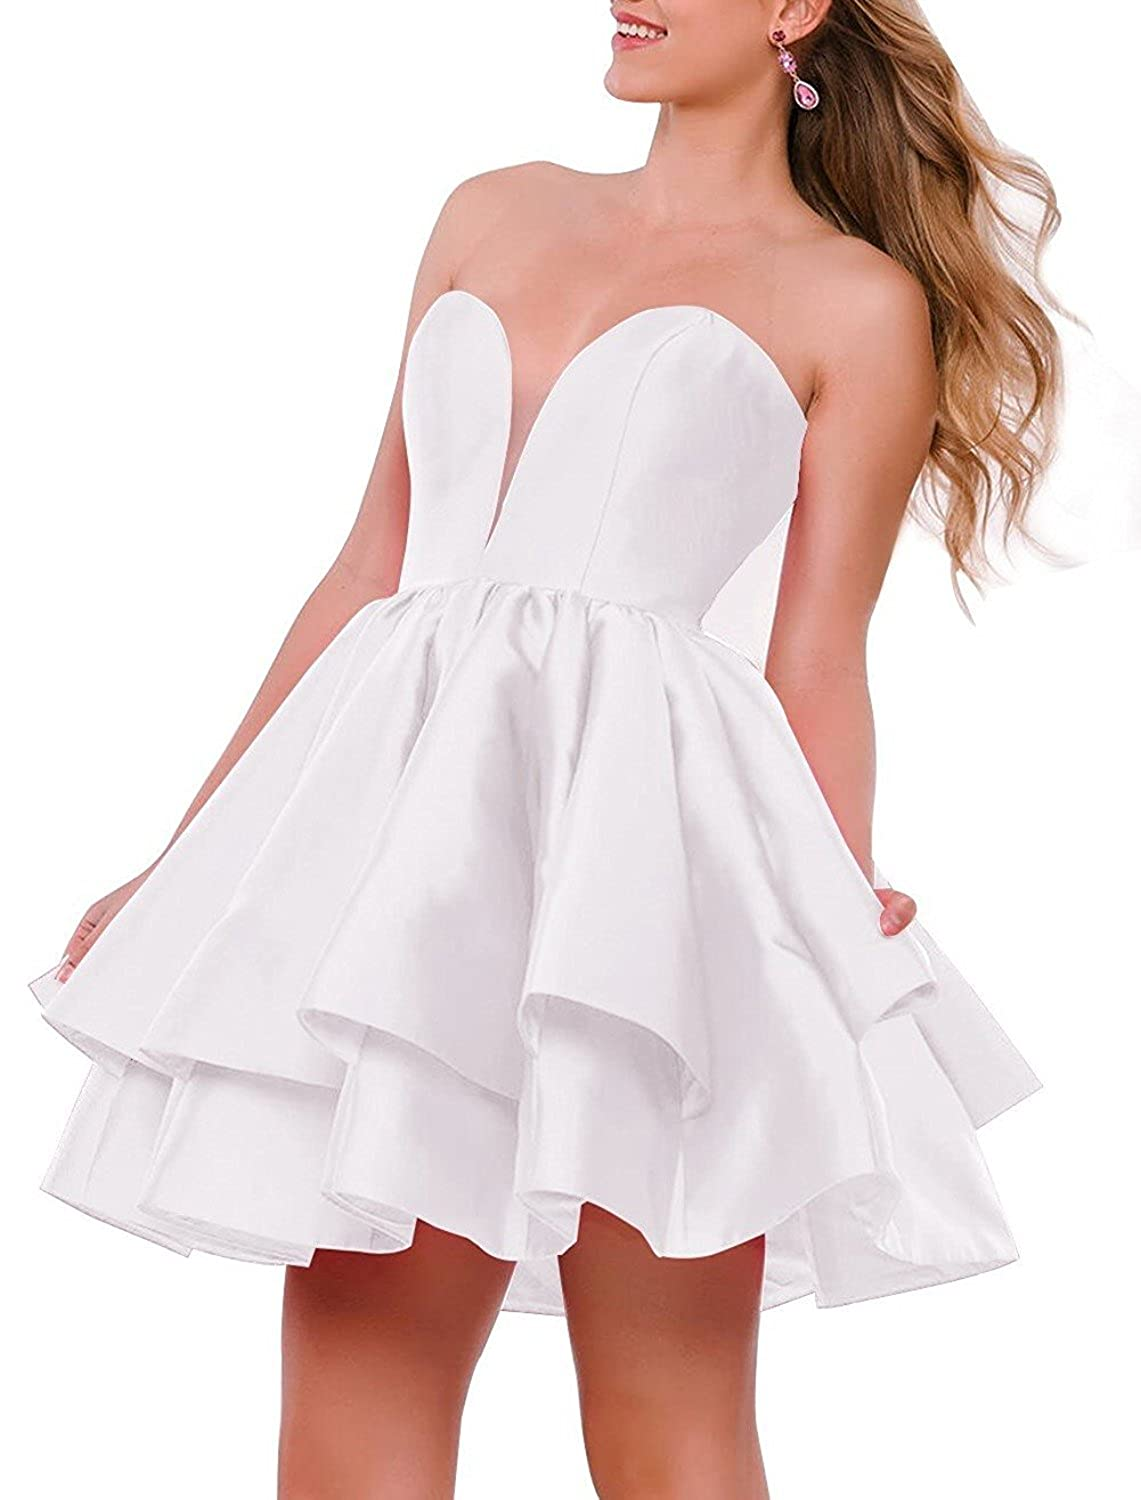 White JQLD Women Strapless Short Homecoming Dresses Ruffles Satin Prom Gown Formal with Pocket